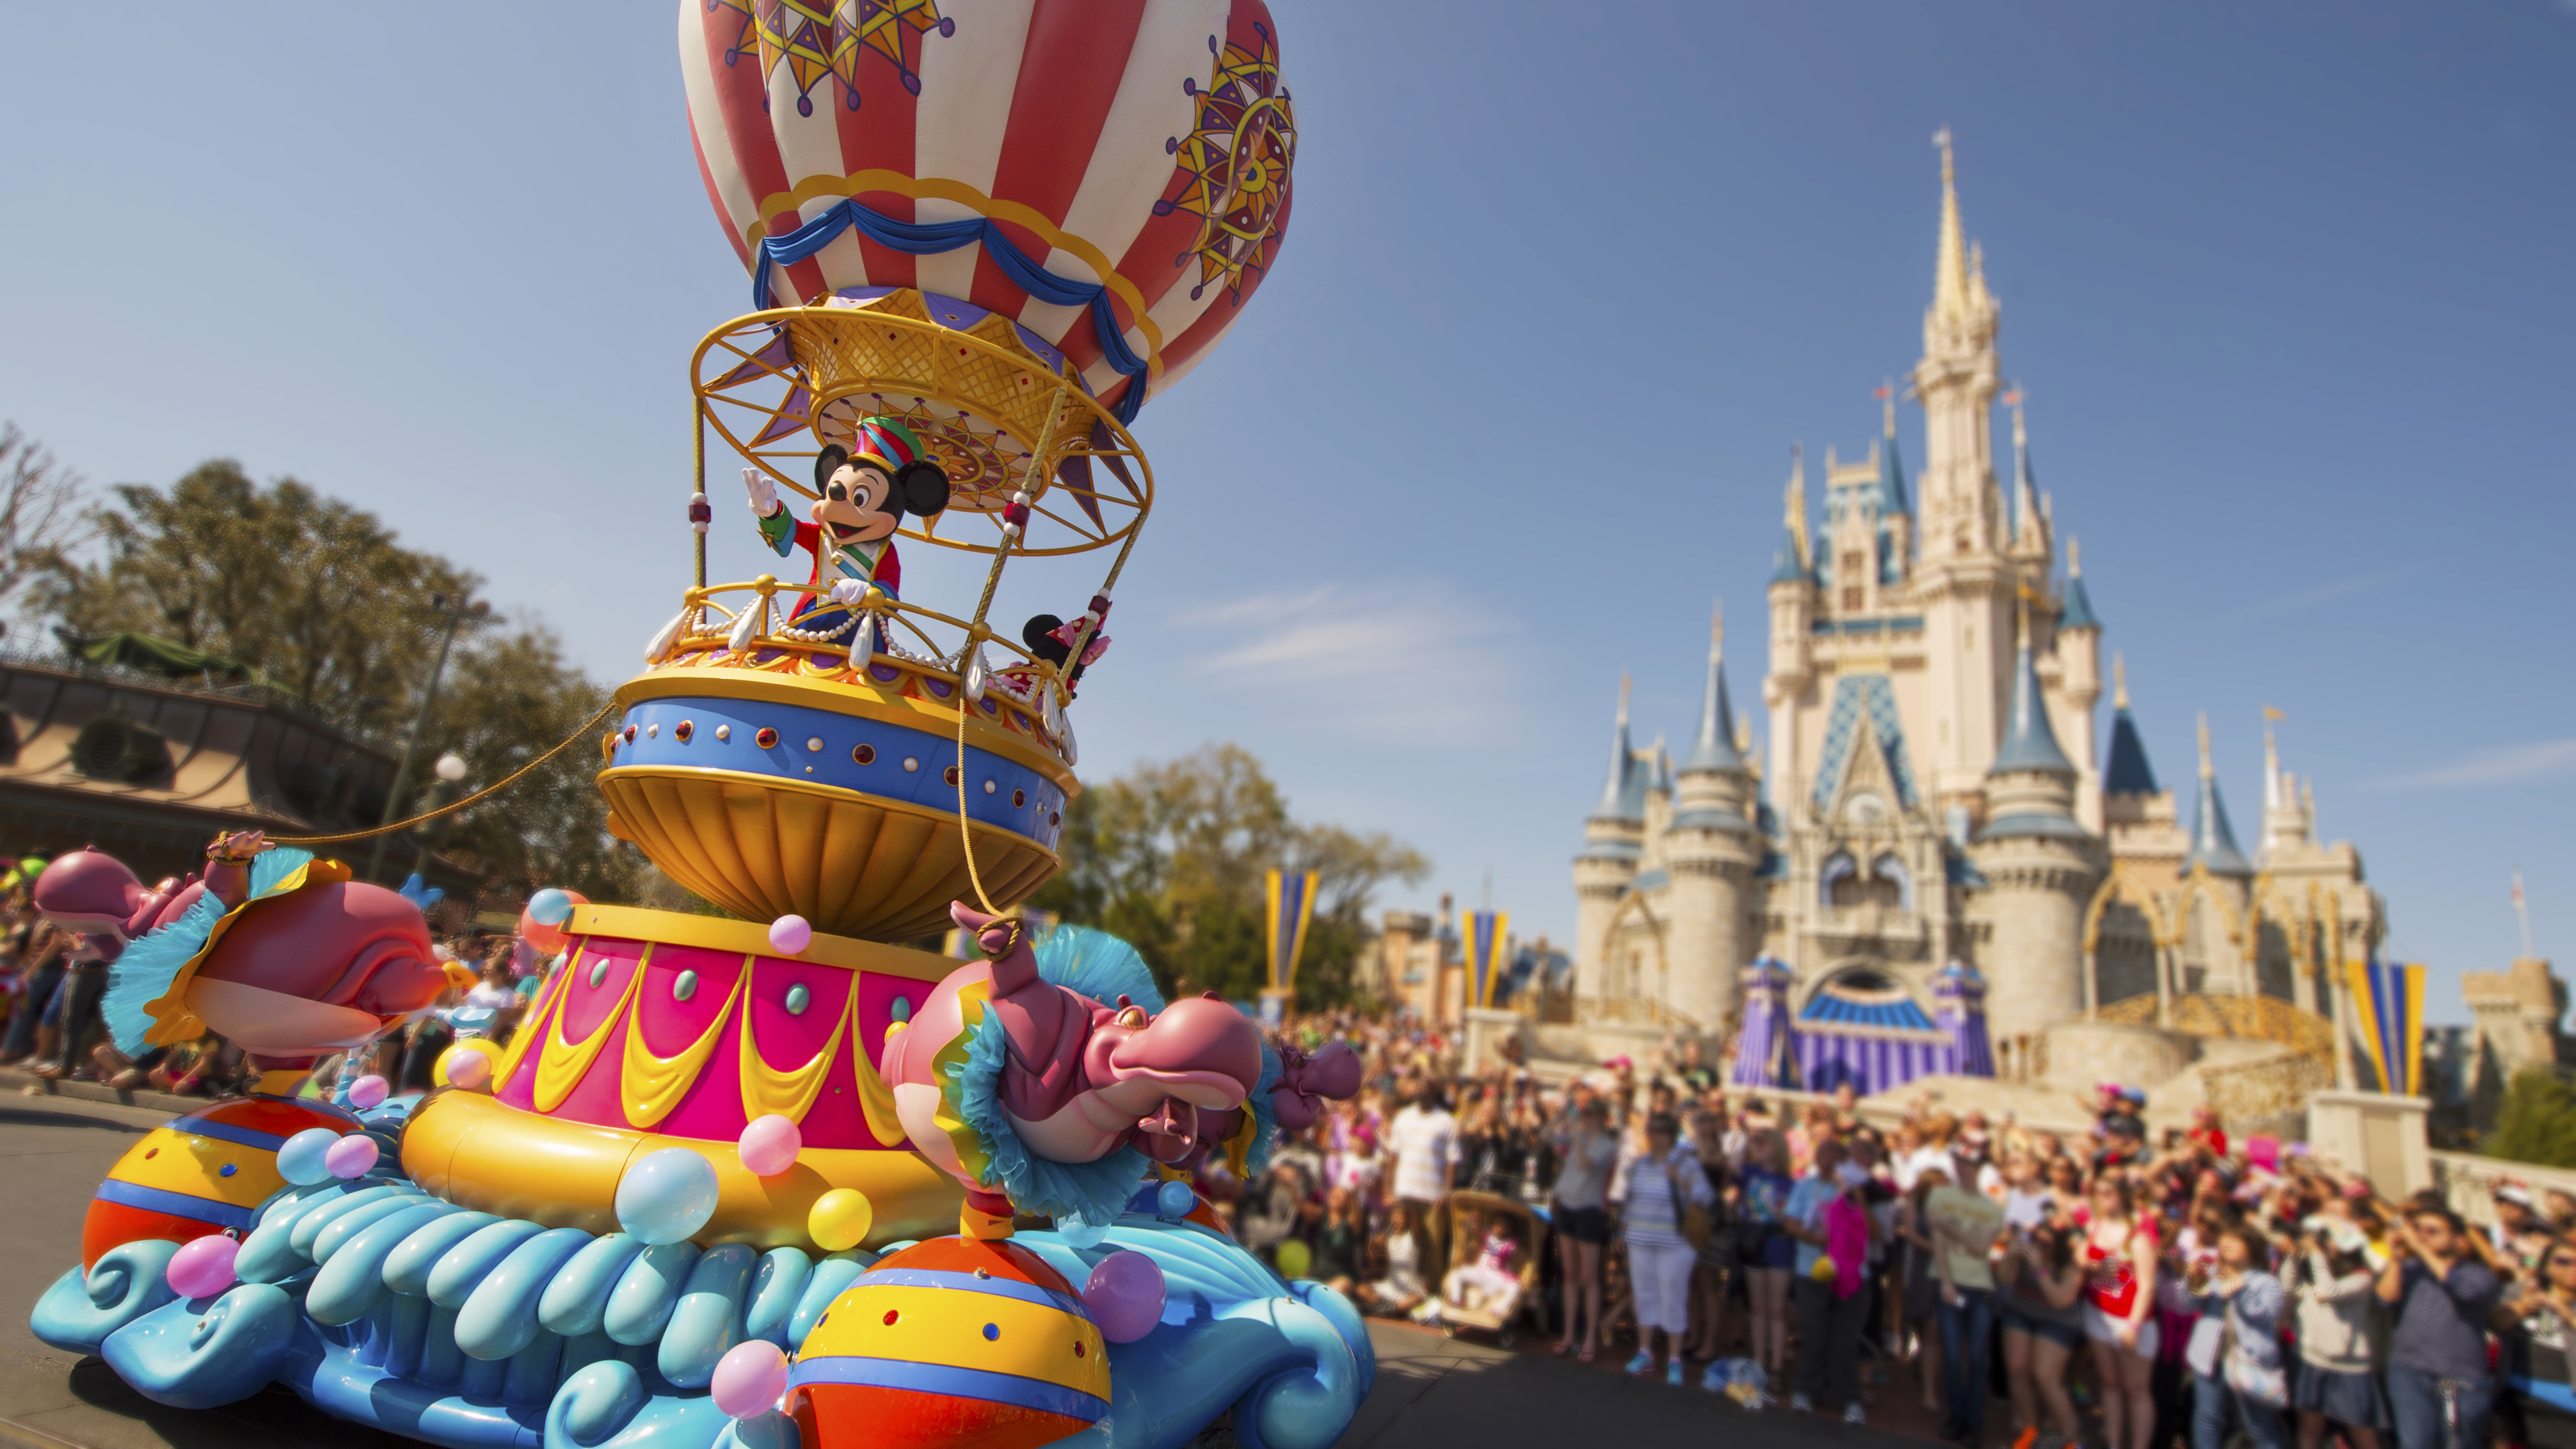 Festival of Fantasy Parade - Magic Kingdom - Walt Disney World Resort